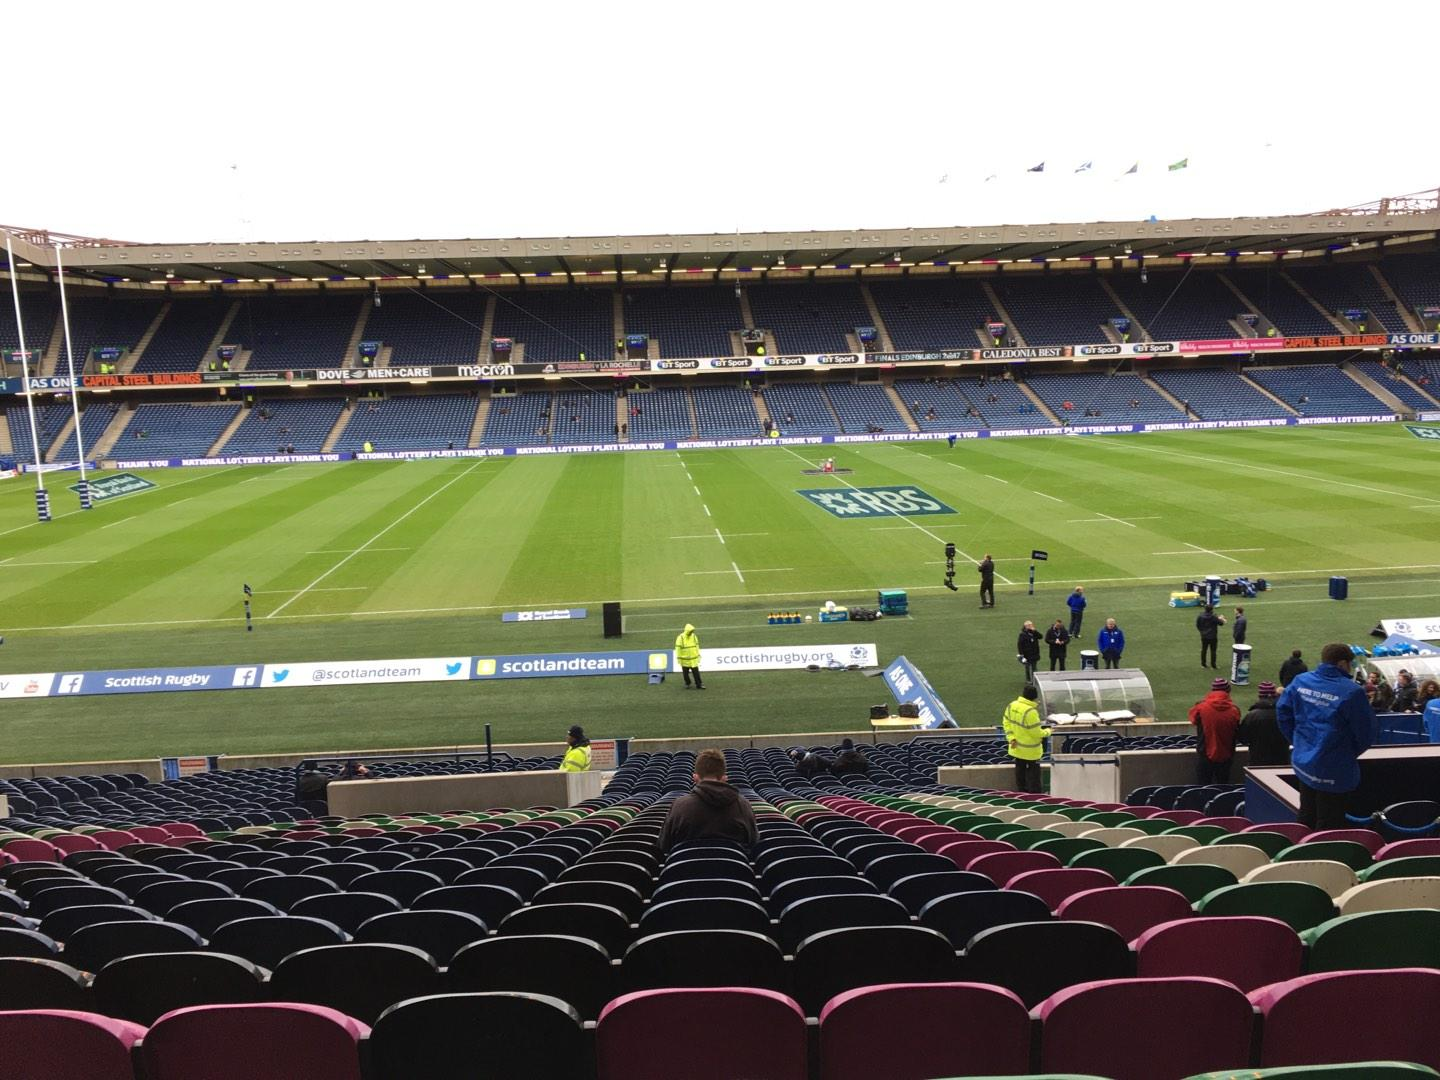 Murrayfield Stadium Section West Row Mm Seat 28